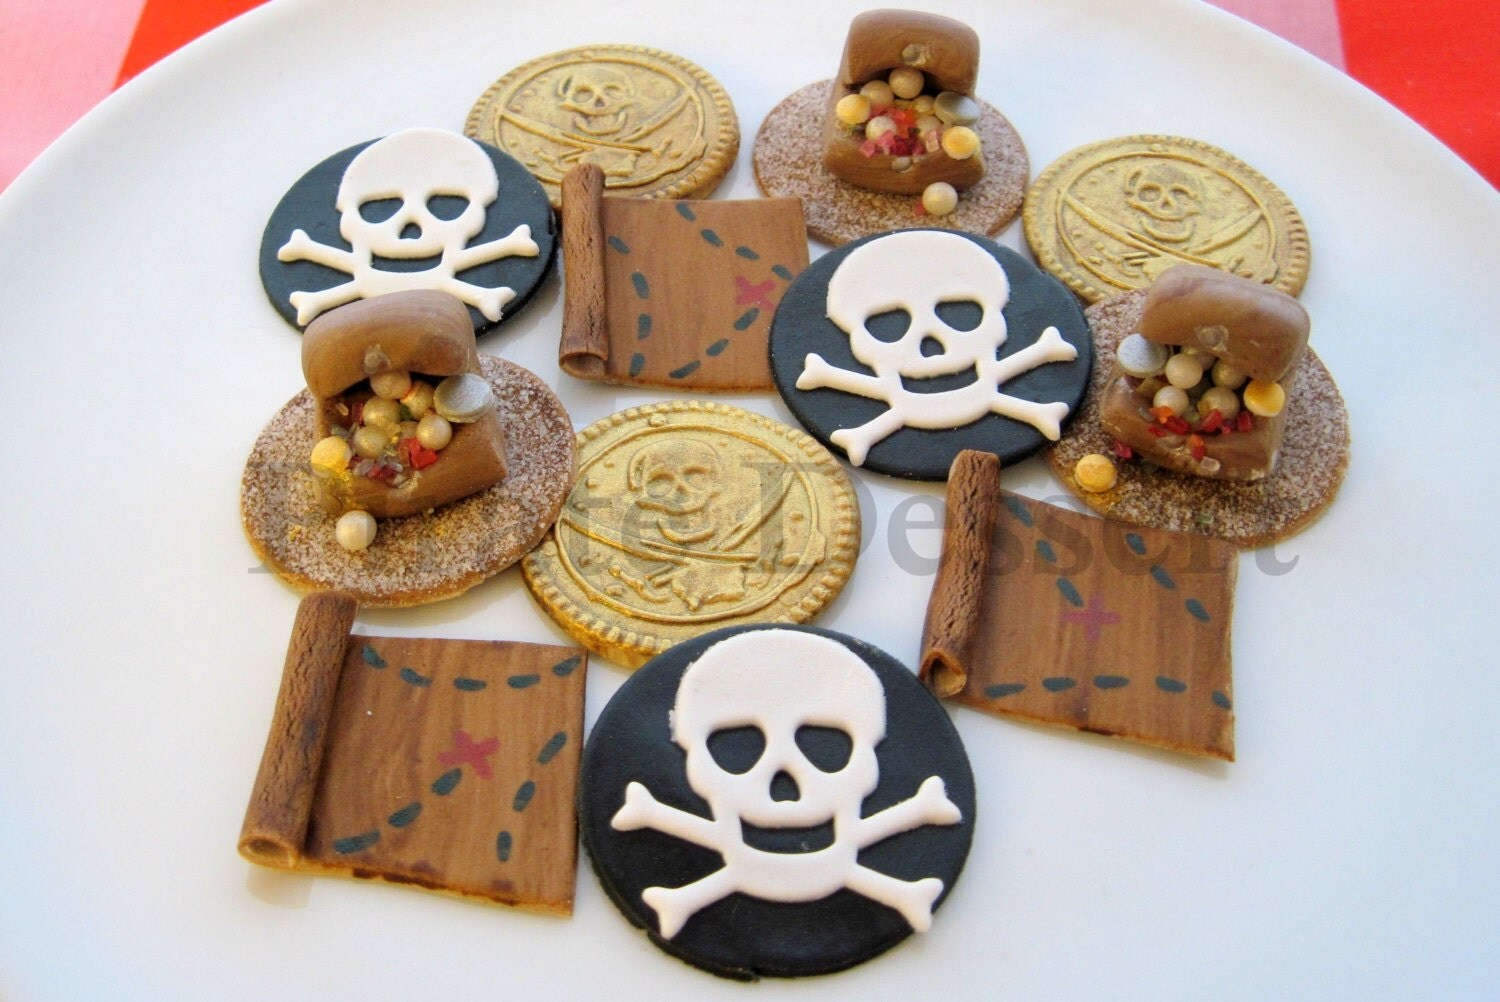 Edible Pirate Cake Decorations